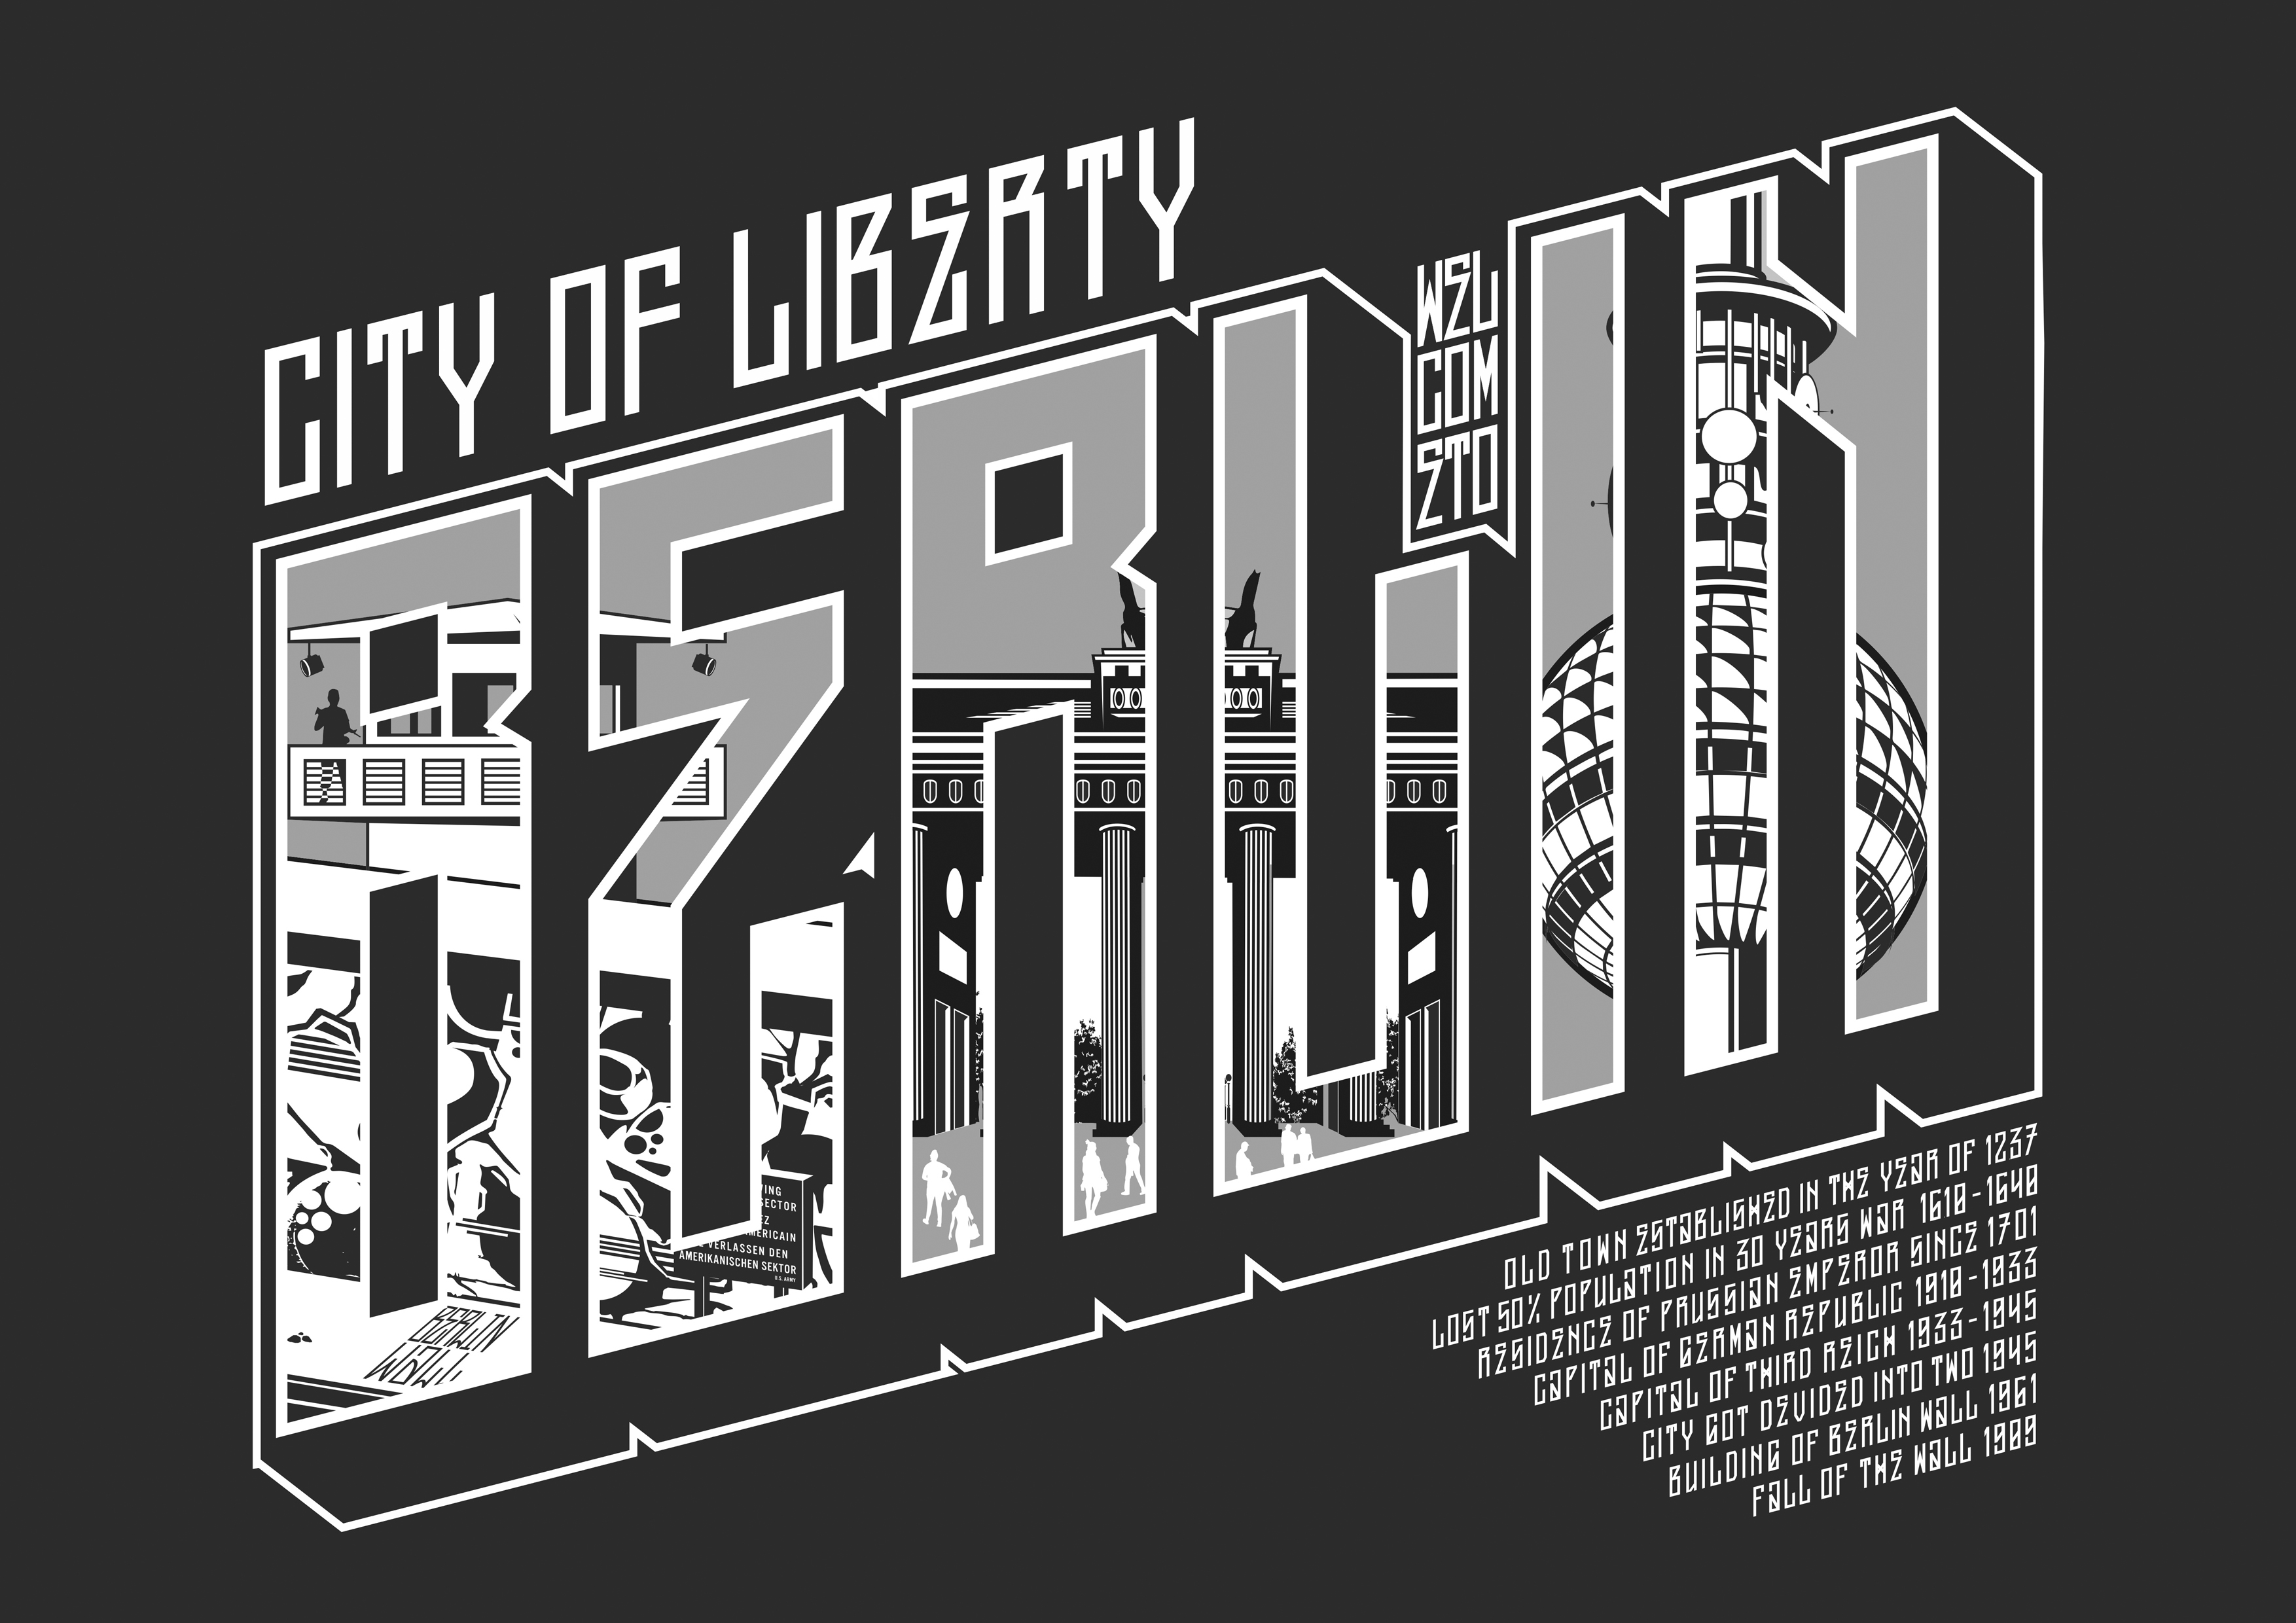 graphic design,grafik design, graffiti,illustration,berlin,post soviet,vector,vektor,sketch